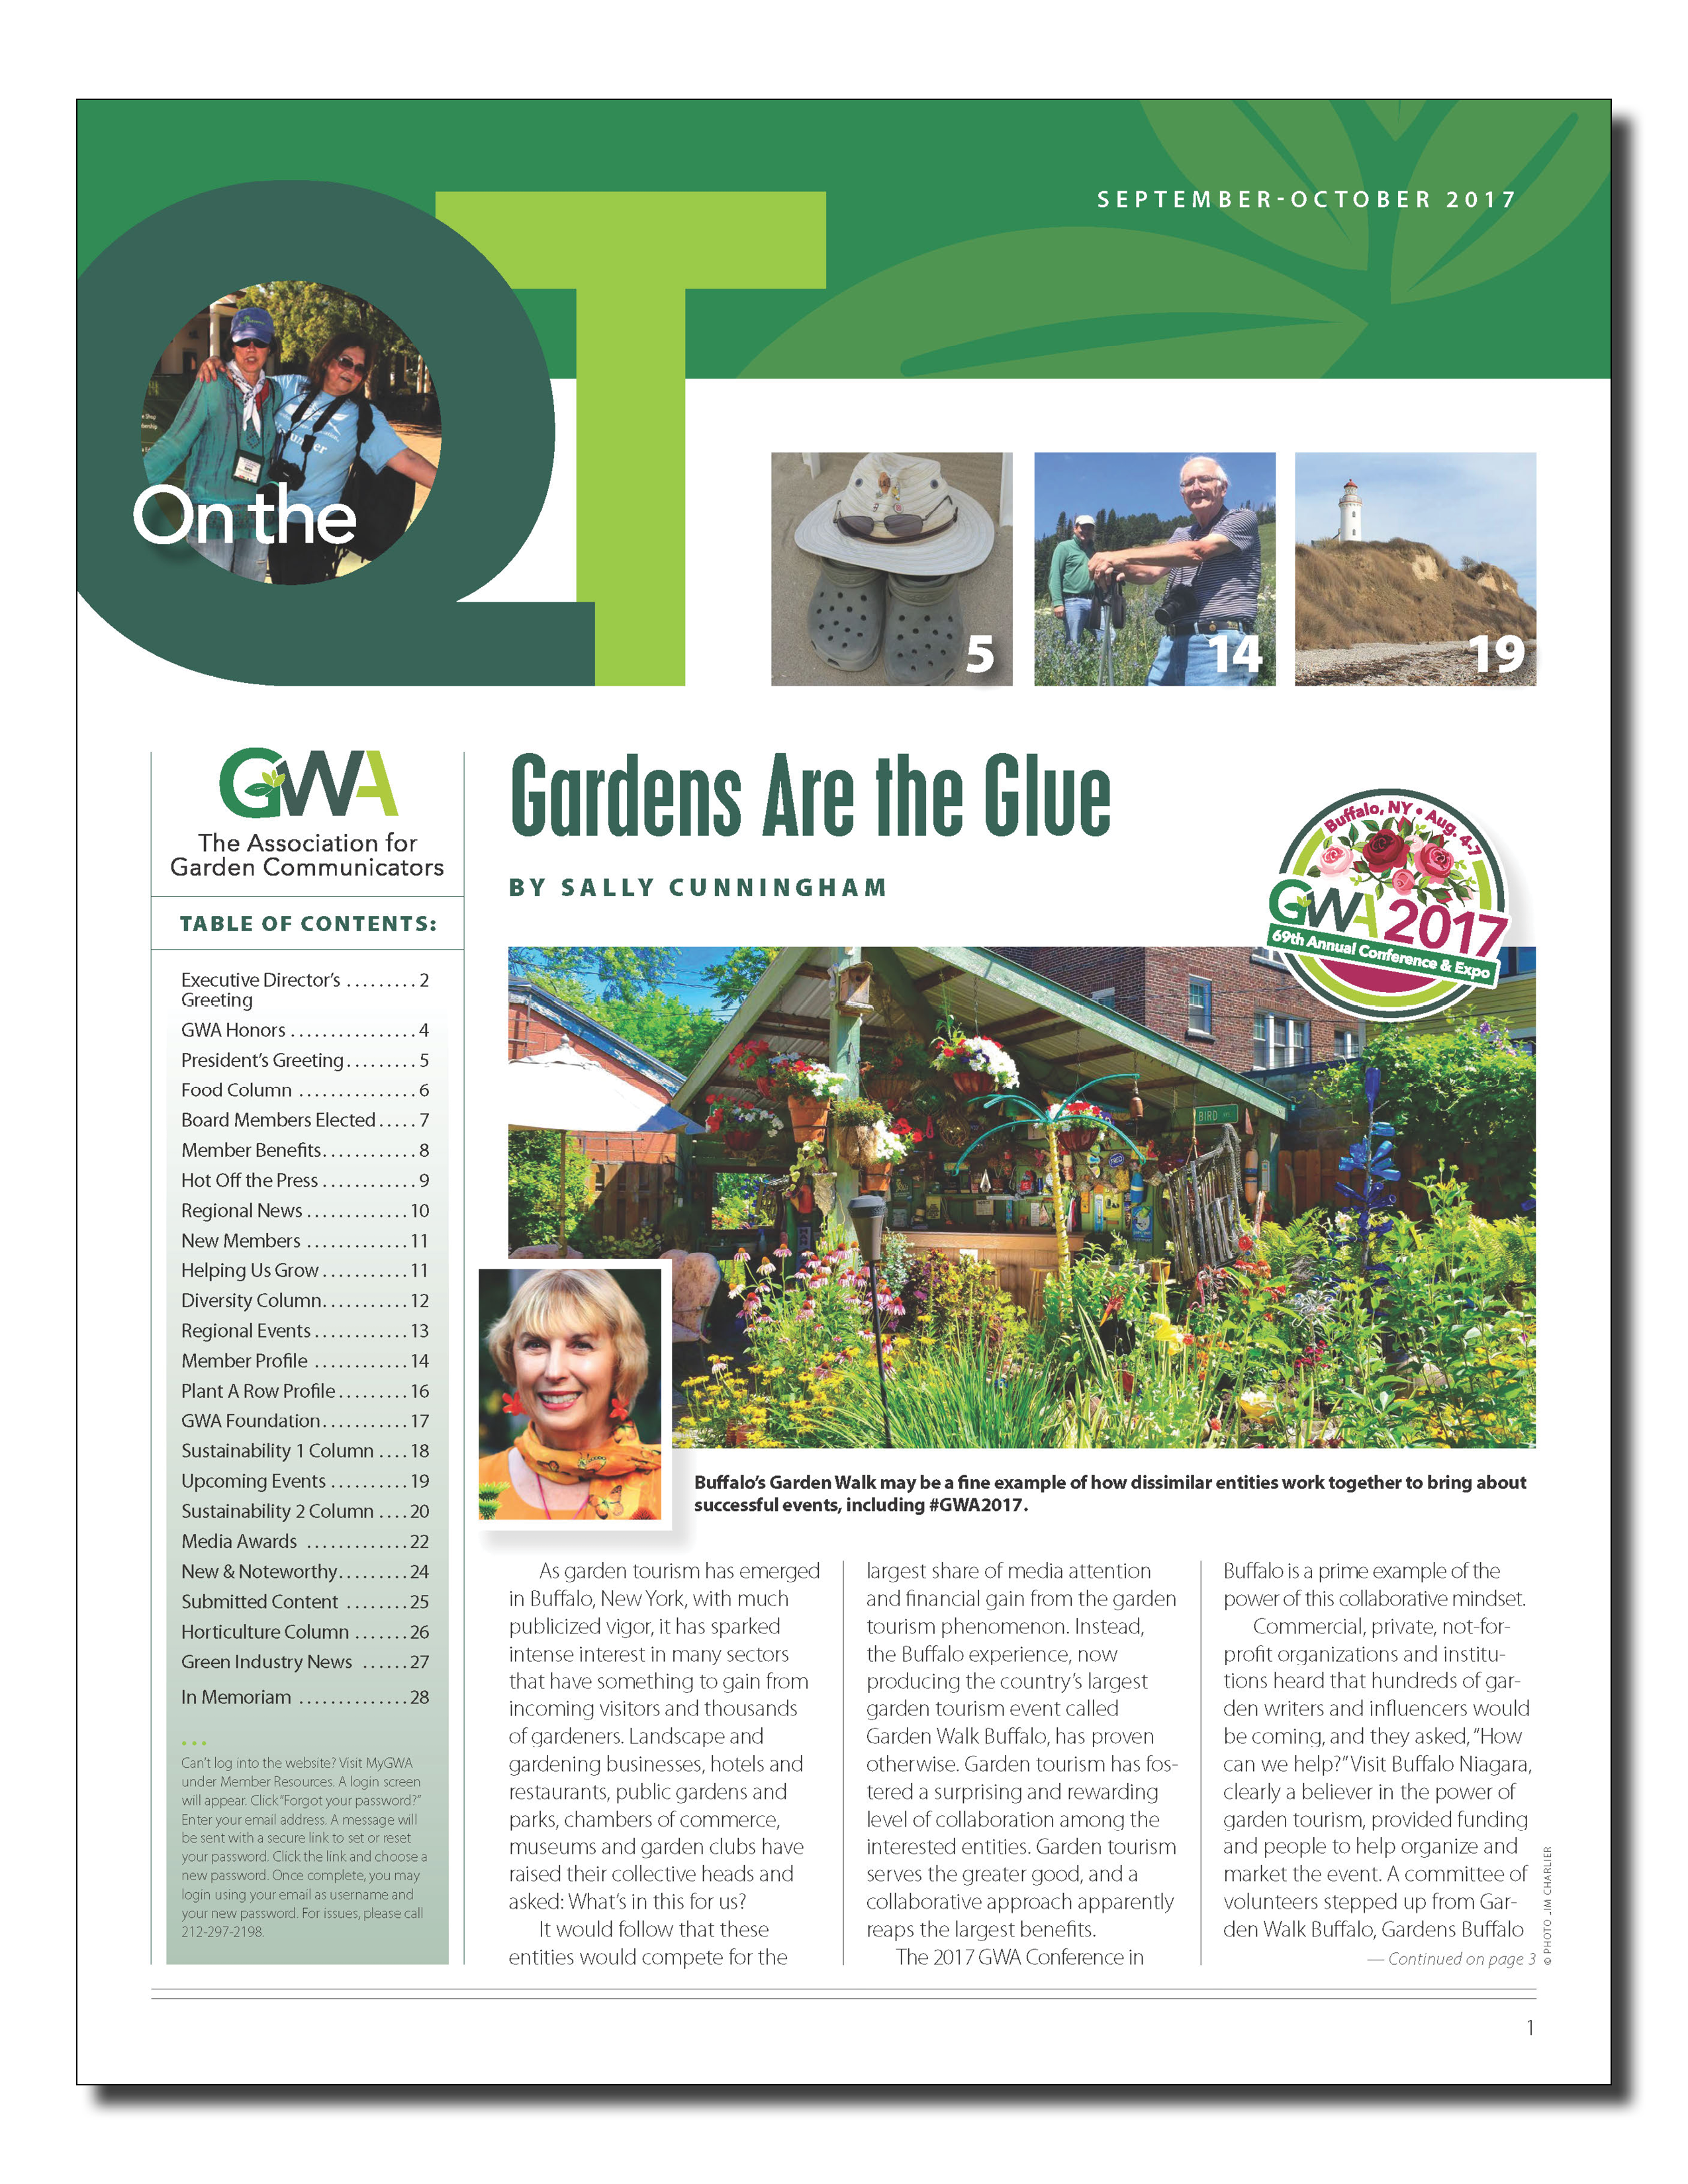 GWA_On_the_QT_August-September_2017_COVER_Formatted.png